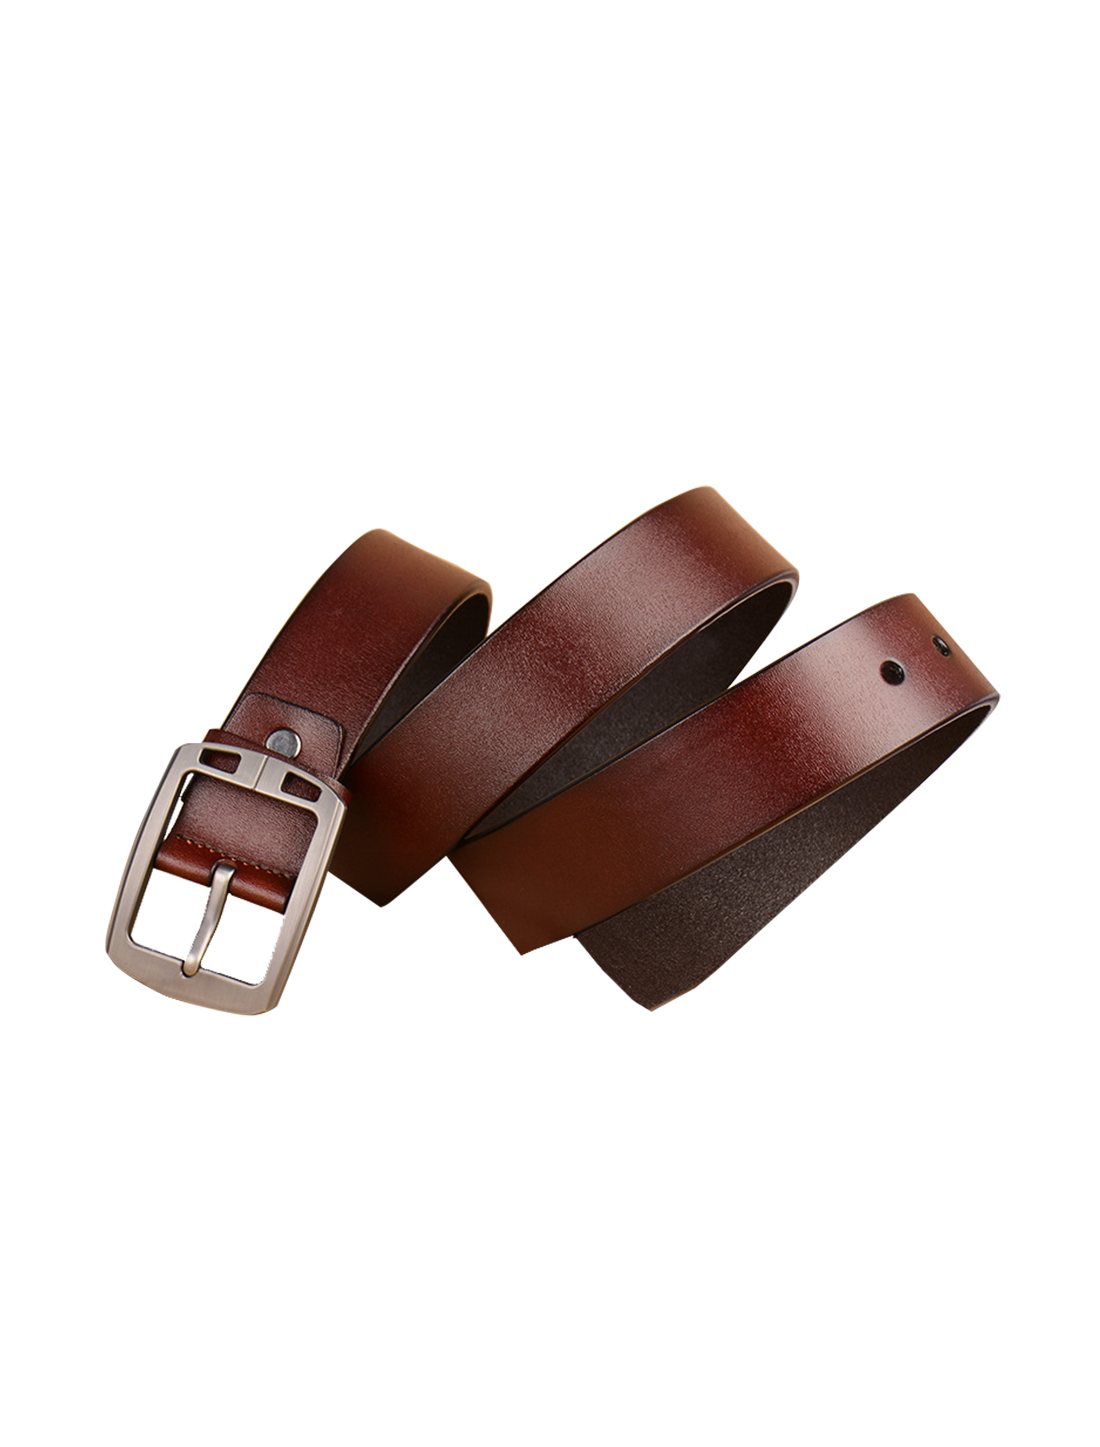 Mens Antique Vintage Solid Pin Buckle Dress Leather Belt 38mm Width 1 1/2 Brown 120cm